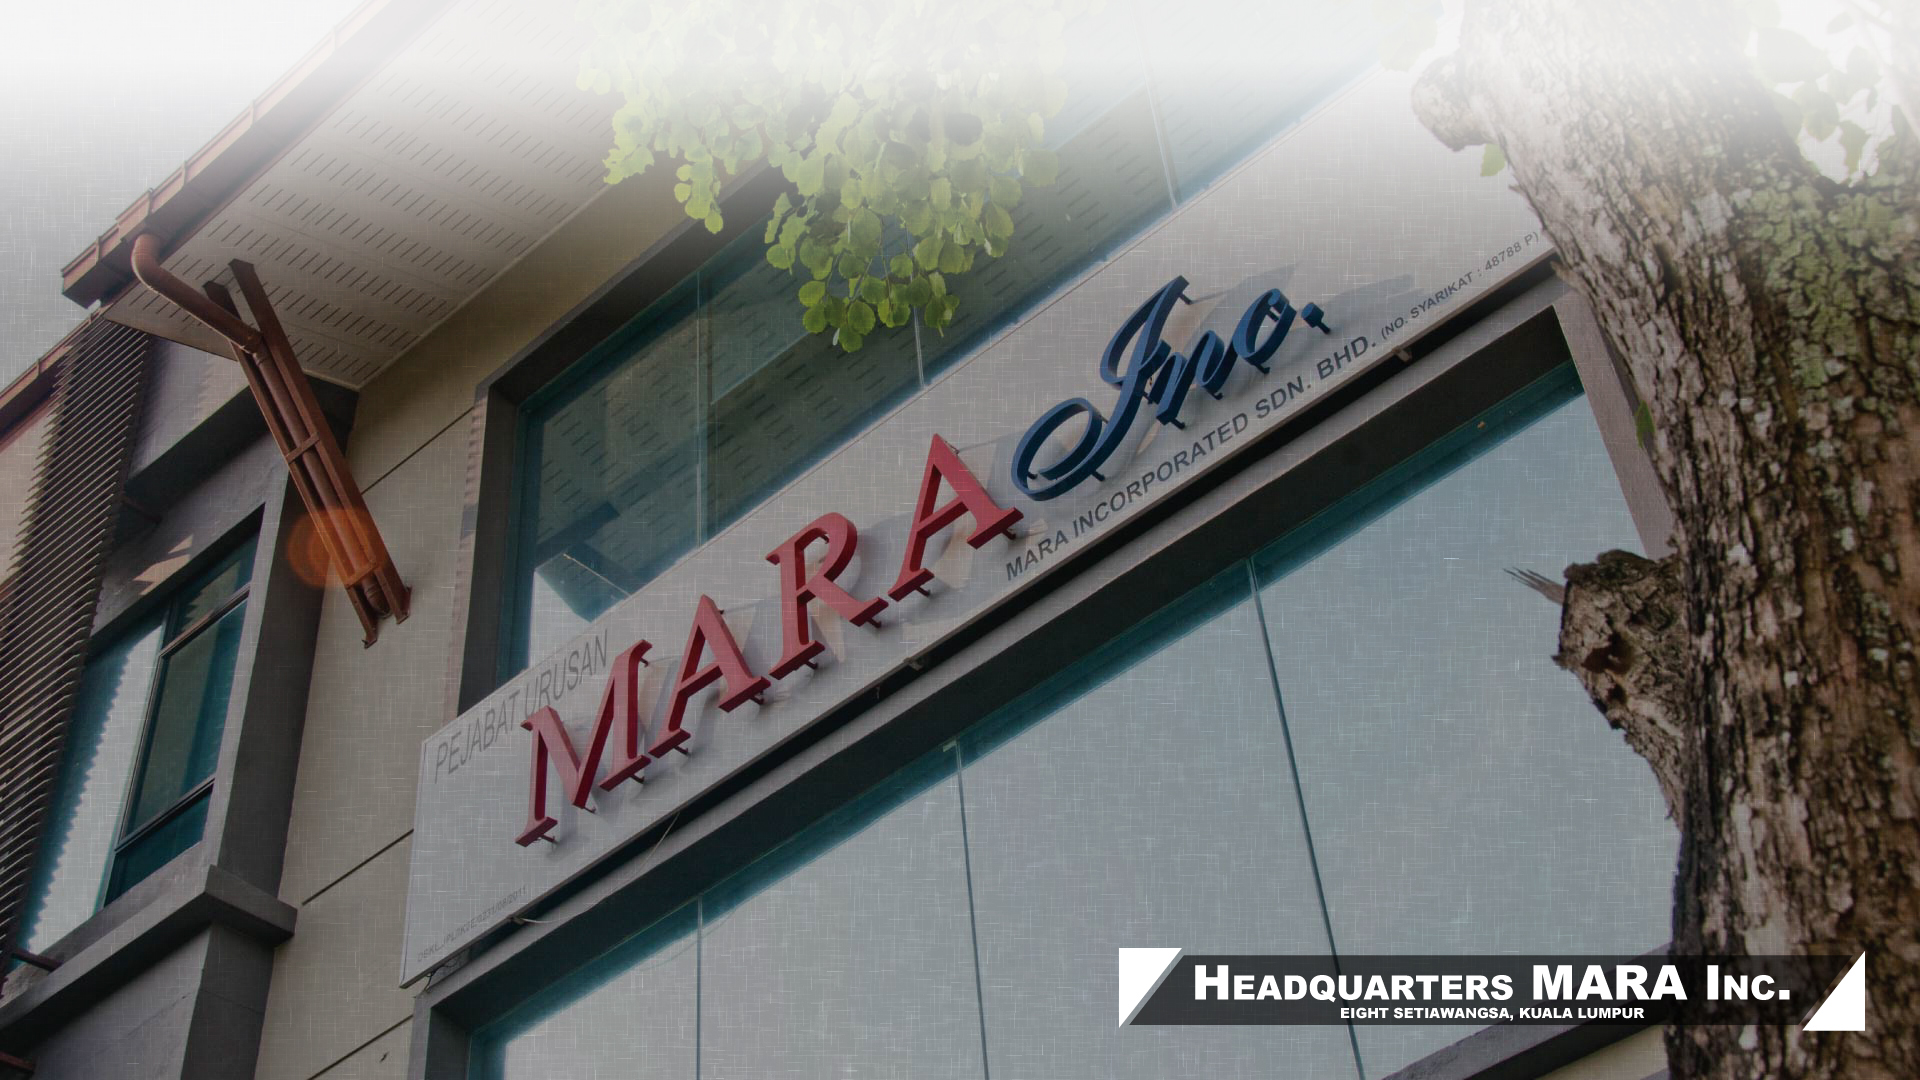 Headquarters MARA Inc.